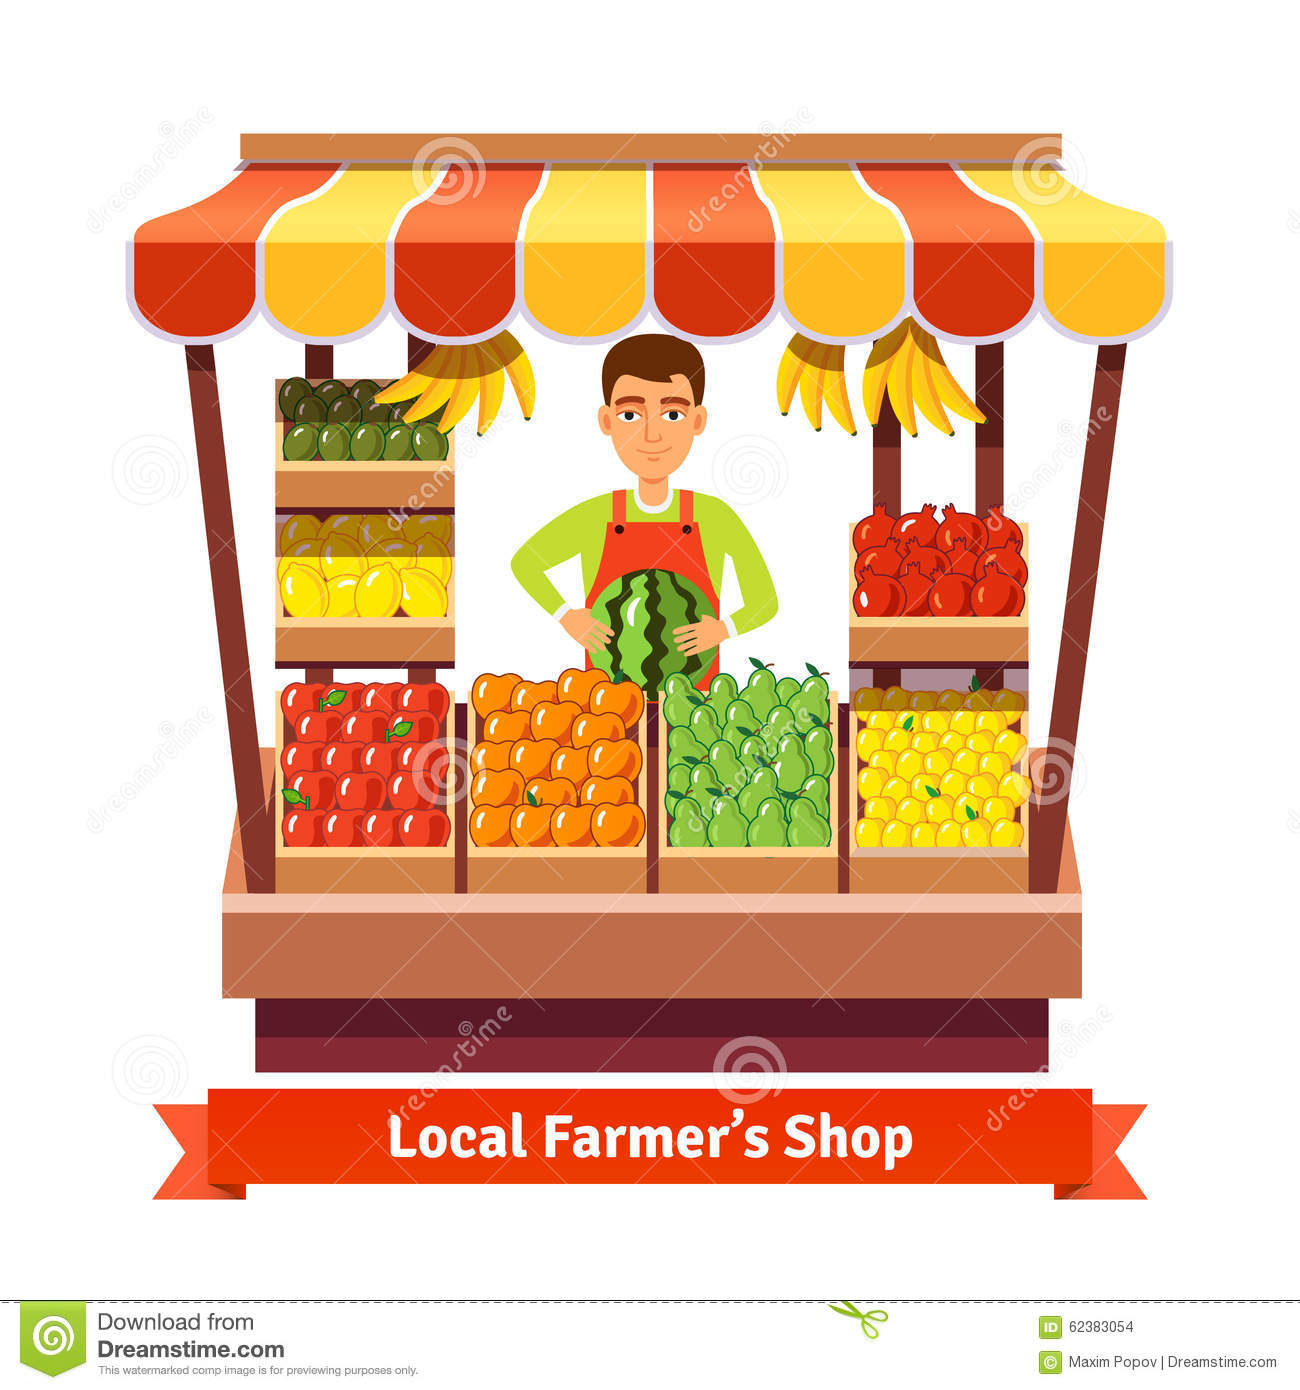 Stock Illustration Local Farmer Produce Shop Keeper Fruit Vegetables Retail Business Owner Working His Own Store Flat Style Illustration Image62383054 on Design Your Own Landscape Plan